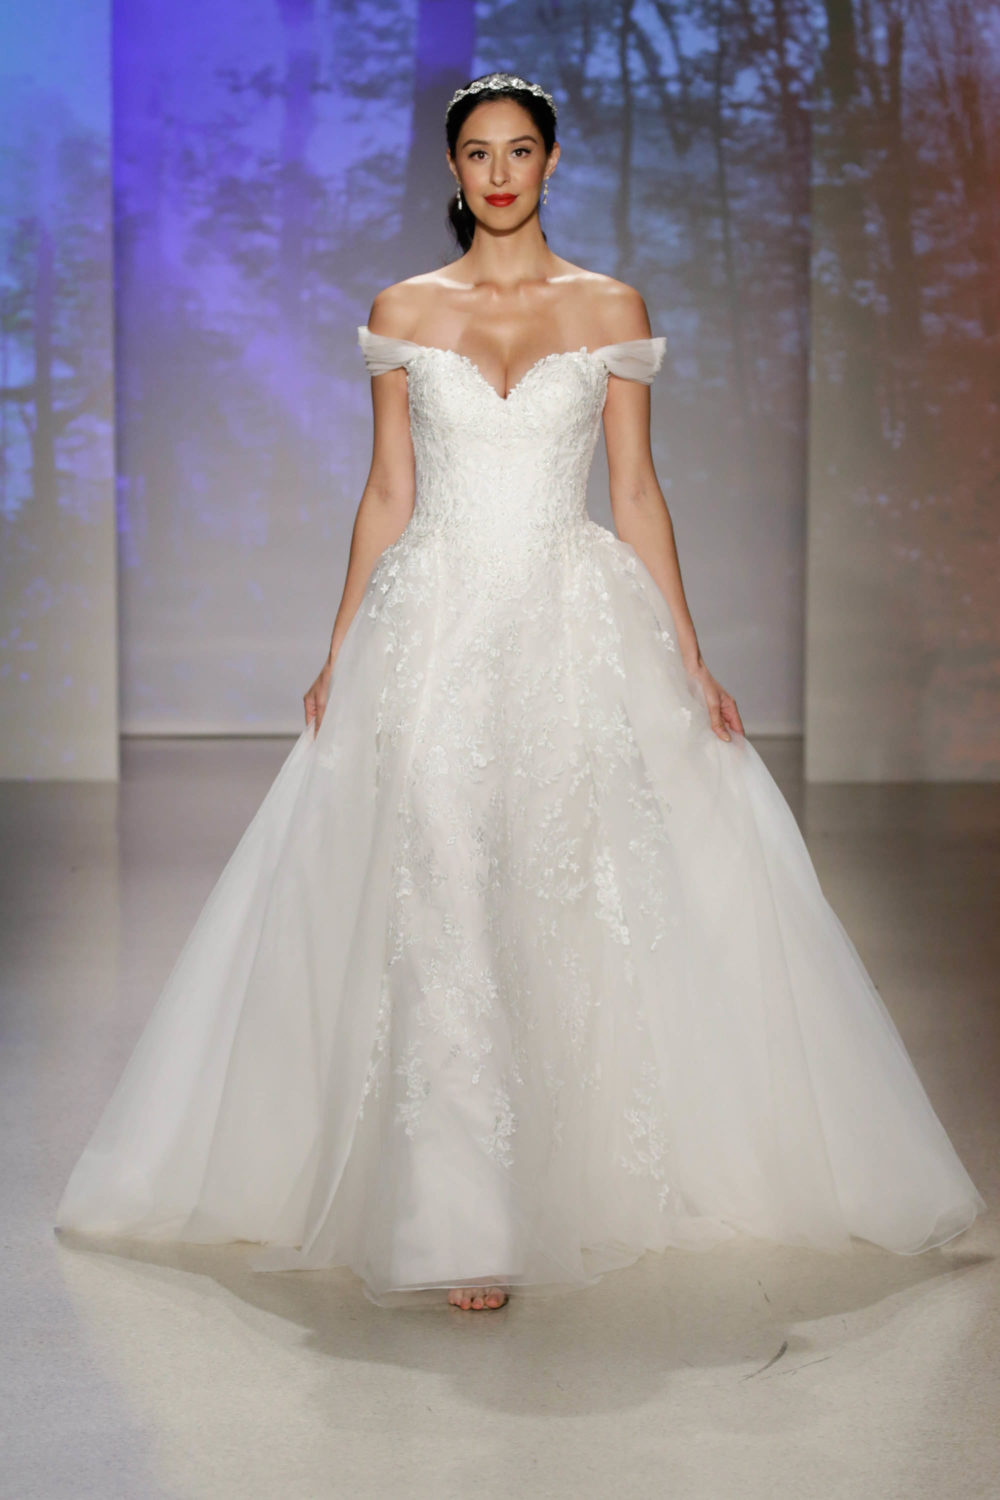 Snow white wedding dress alfred angelo spring 2017 bridal show with snow white wedding dress alfred angelo spring 2017 bridal show with disney weddings junglespirit Image collections